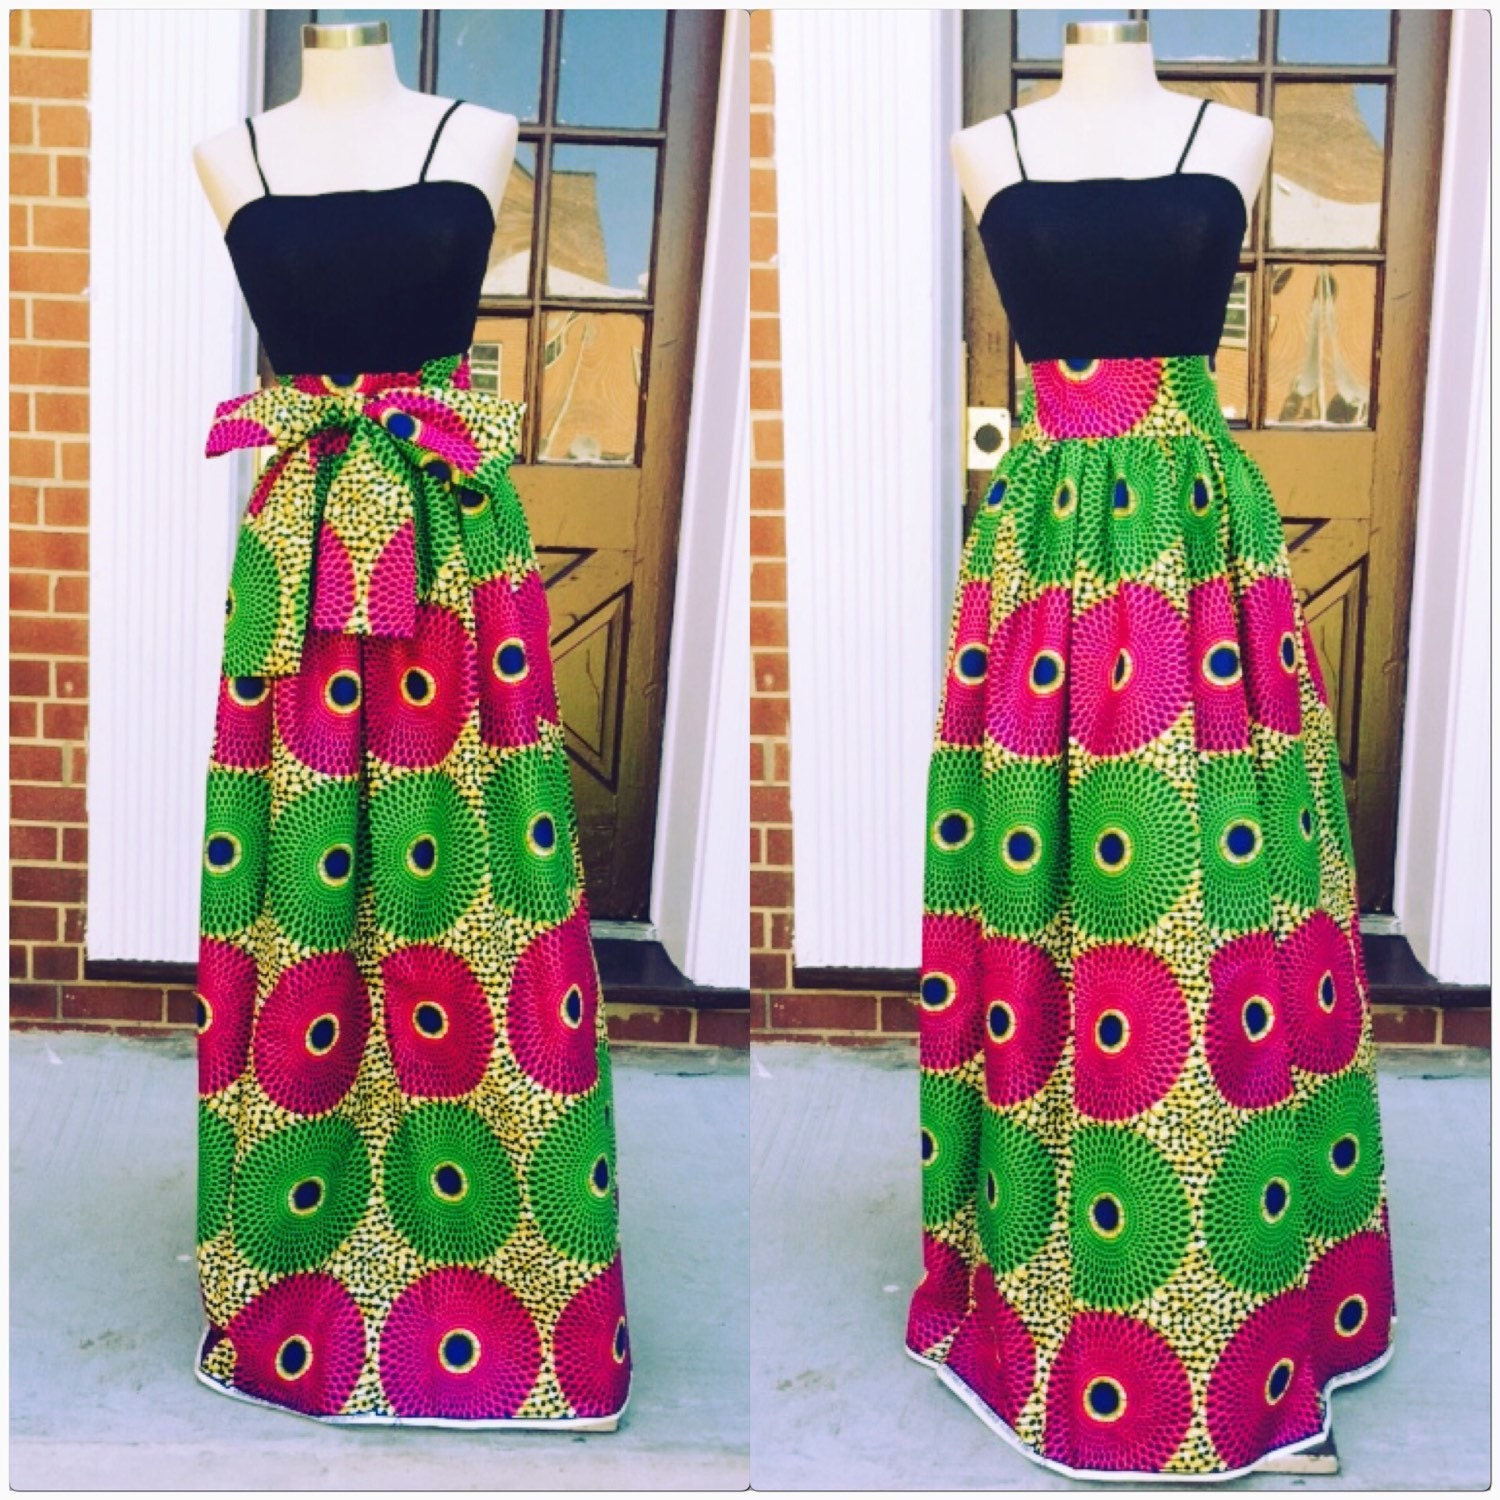 Ankara maxi skirt by Roshes on Etsy